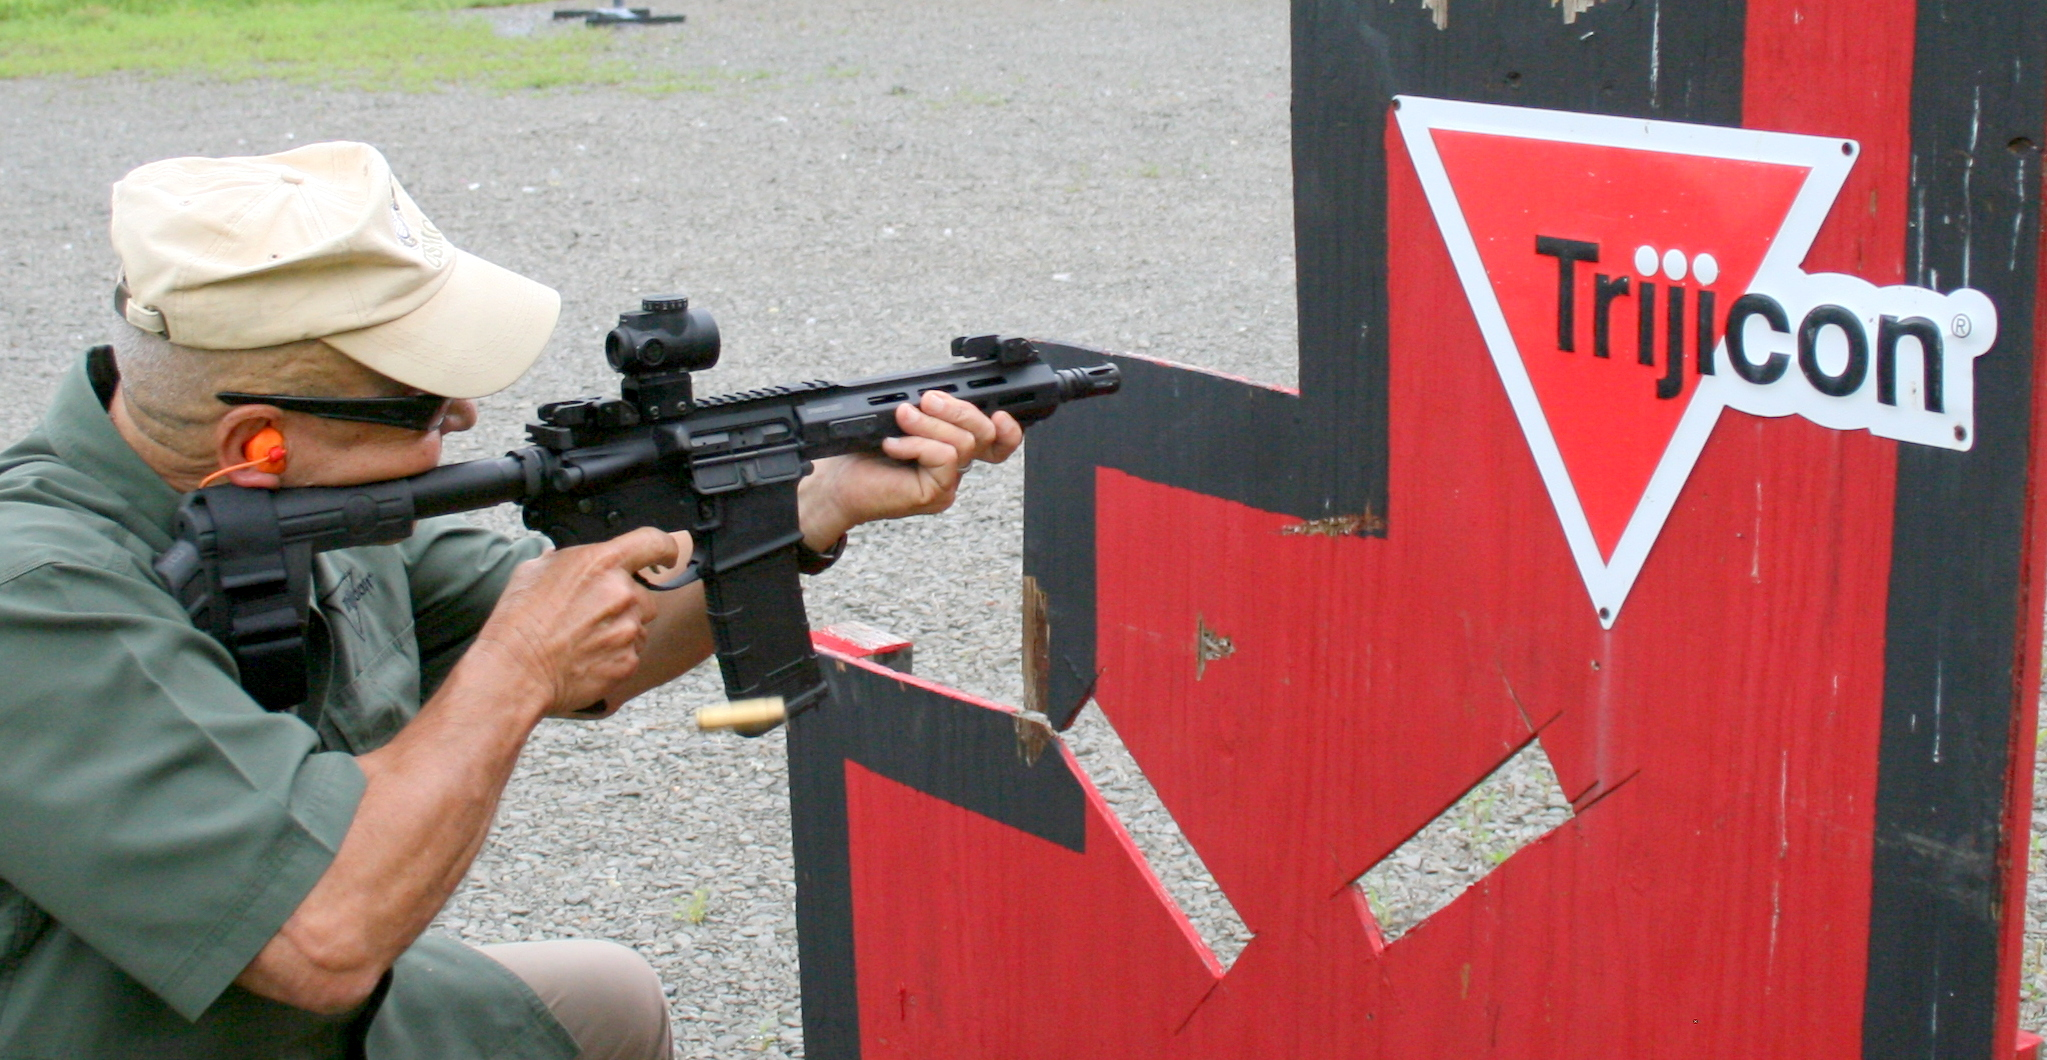 USMC Colonel (Retired) Frank Martello, VP at Trijicon, spanks steel at 100 yards with highly accurate and rugged MRO red-dot sight.